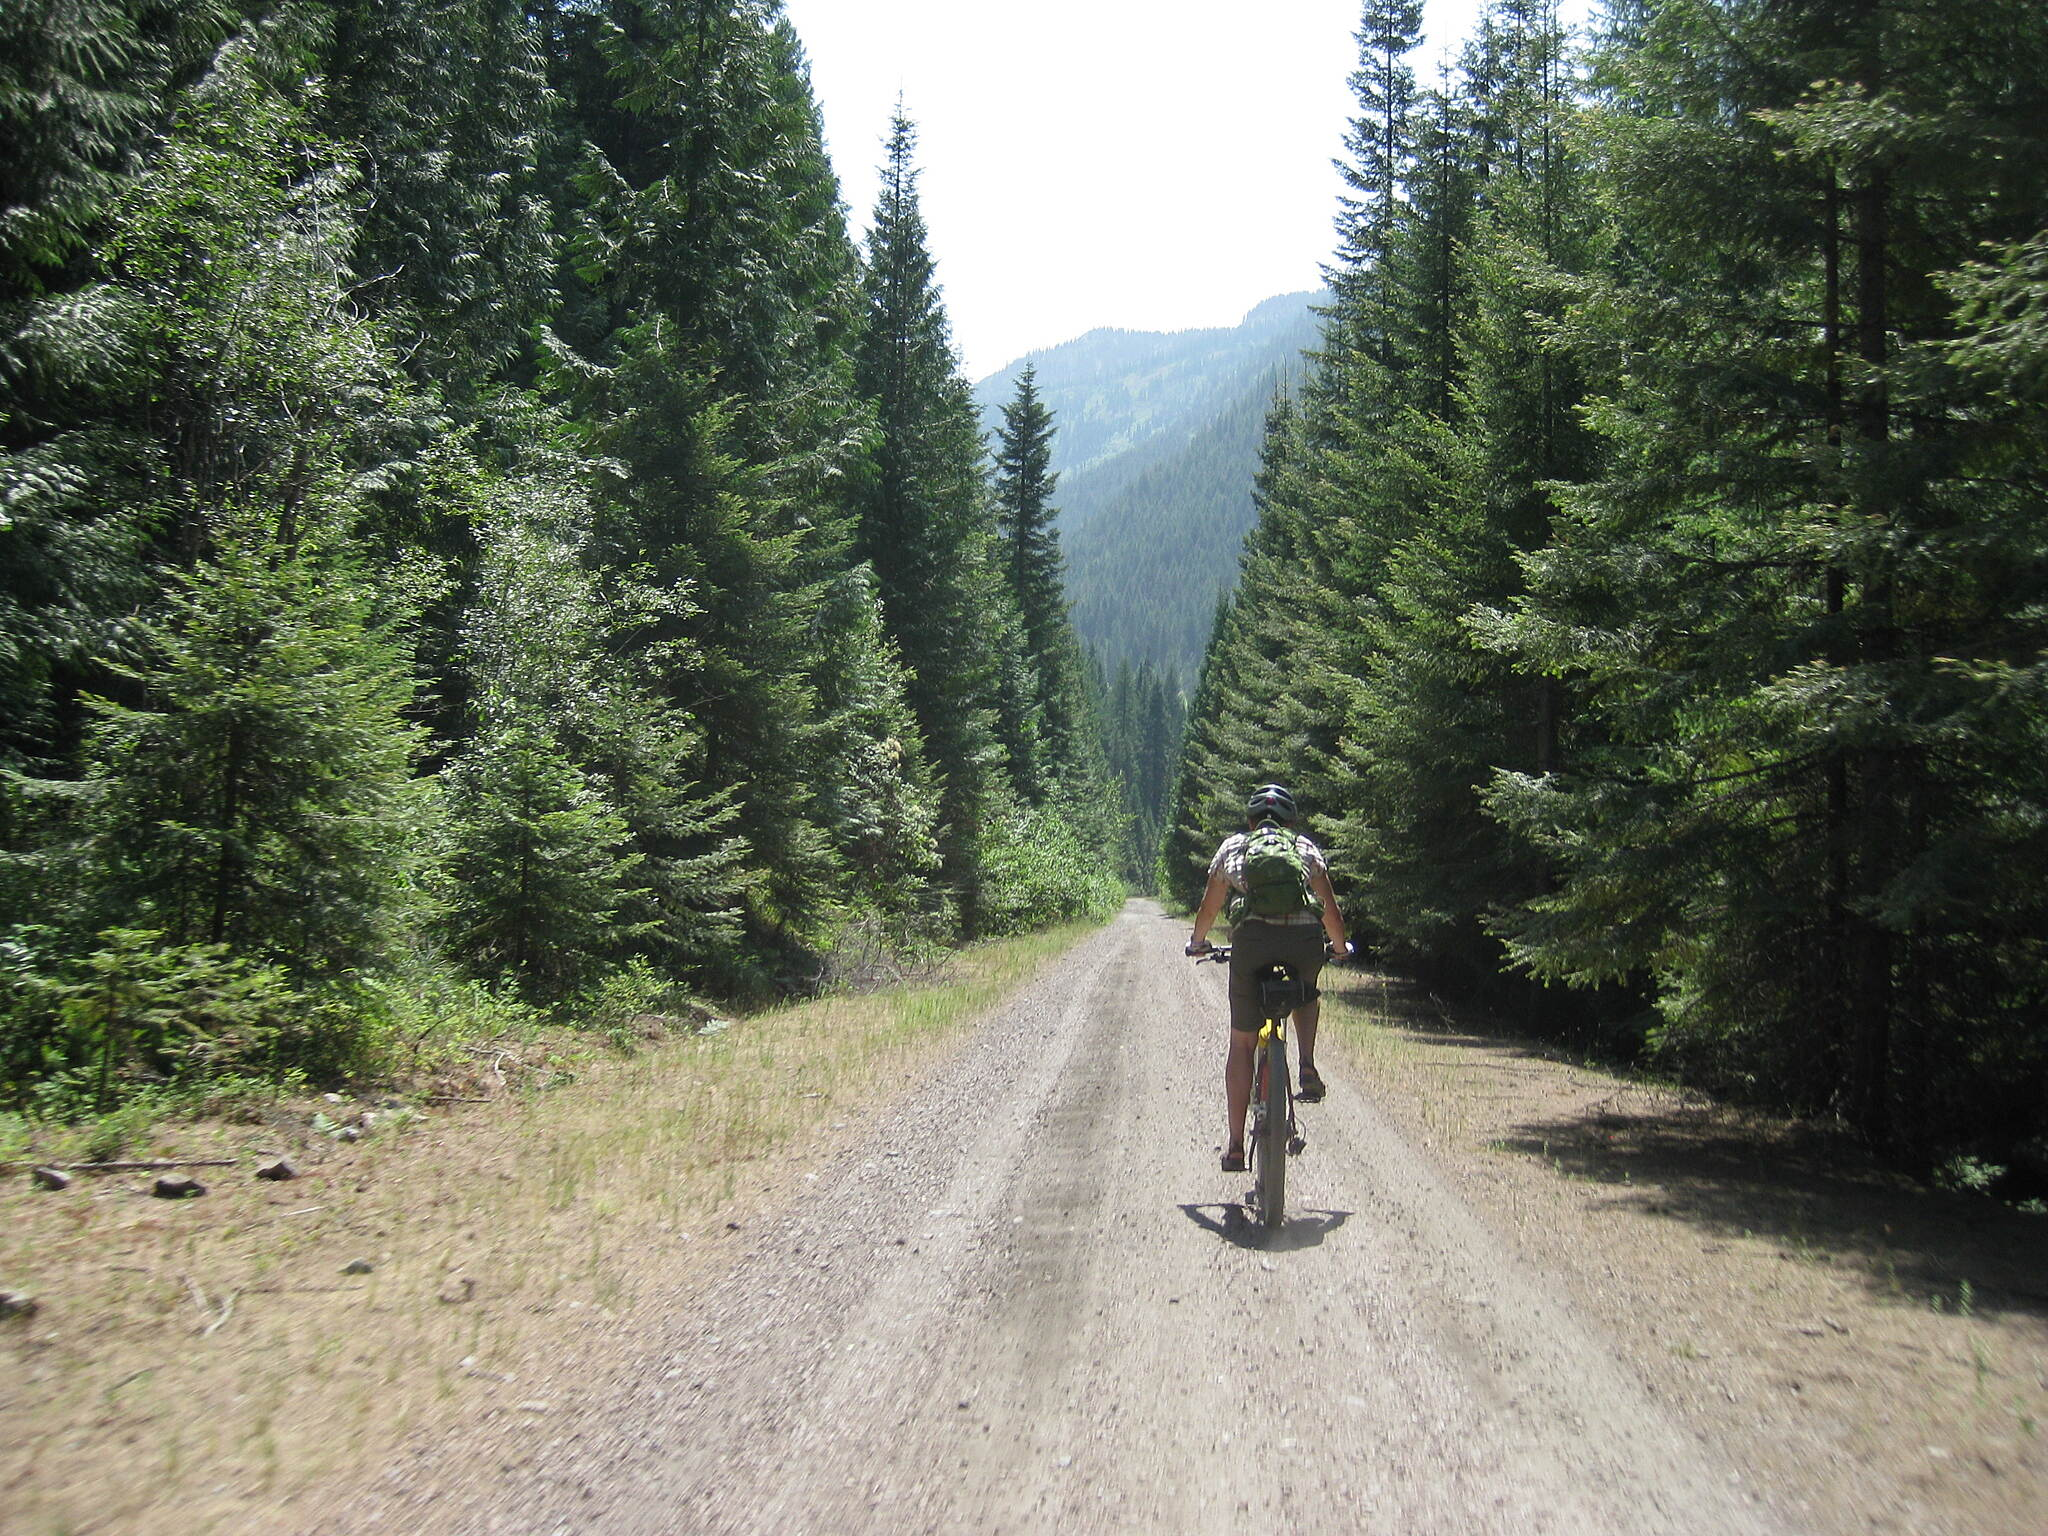 NorPac Trail Cruising back down to Mullan Packed gravel and dirt, good surfaces.